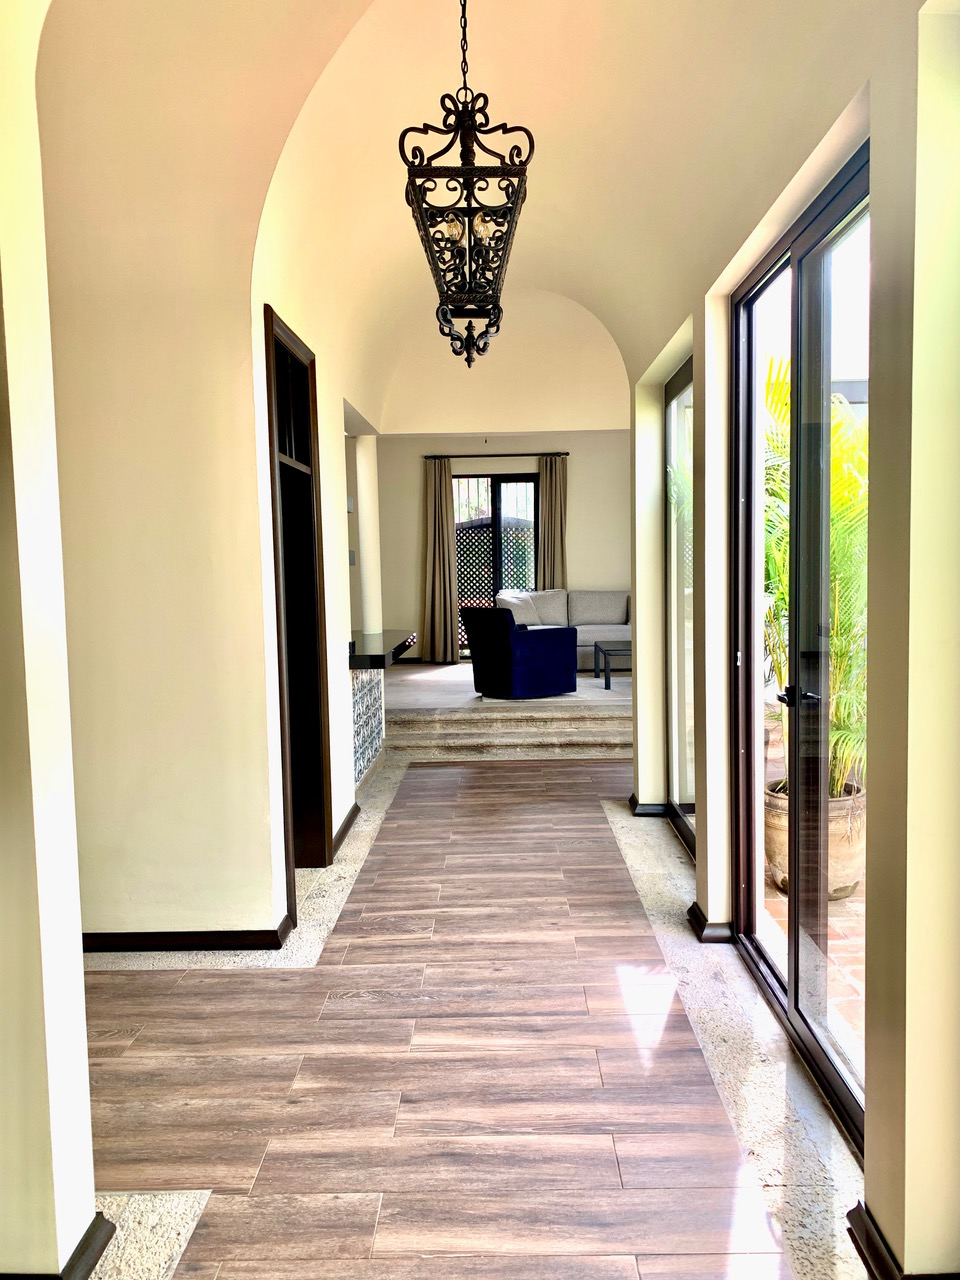 Hallway from living areas to bedrooms.